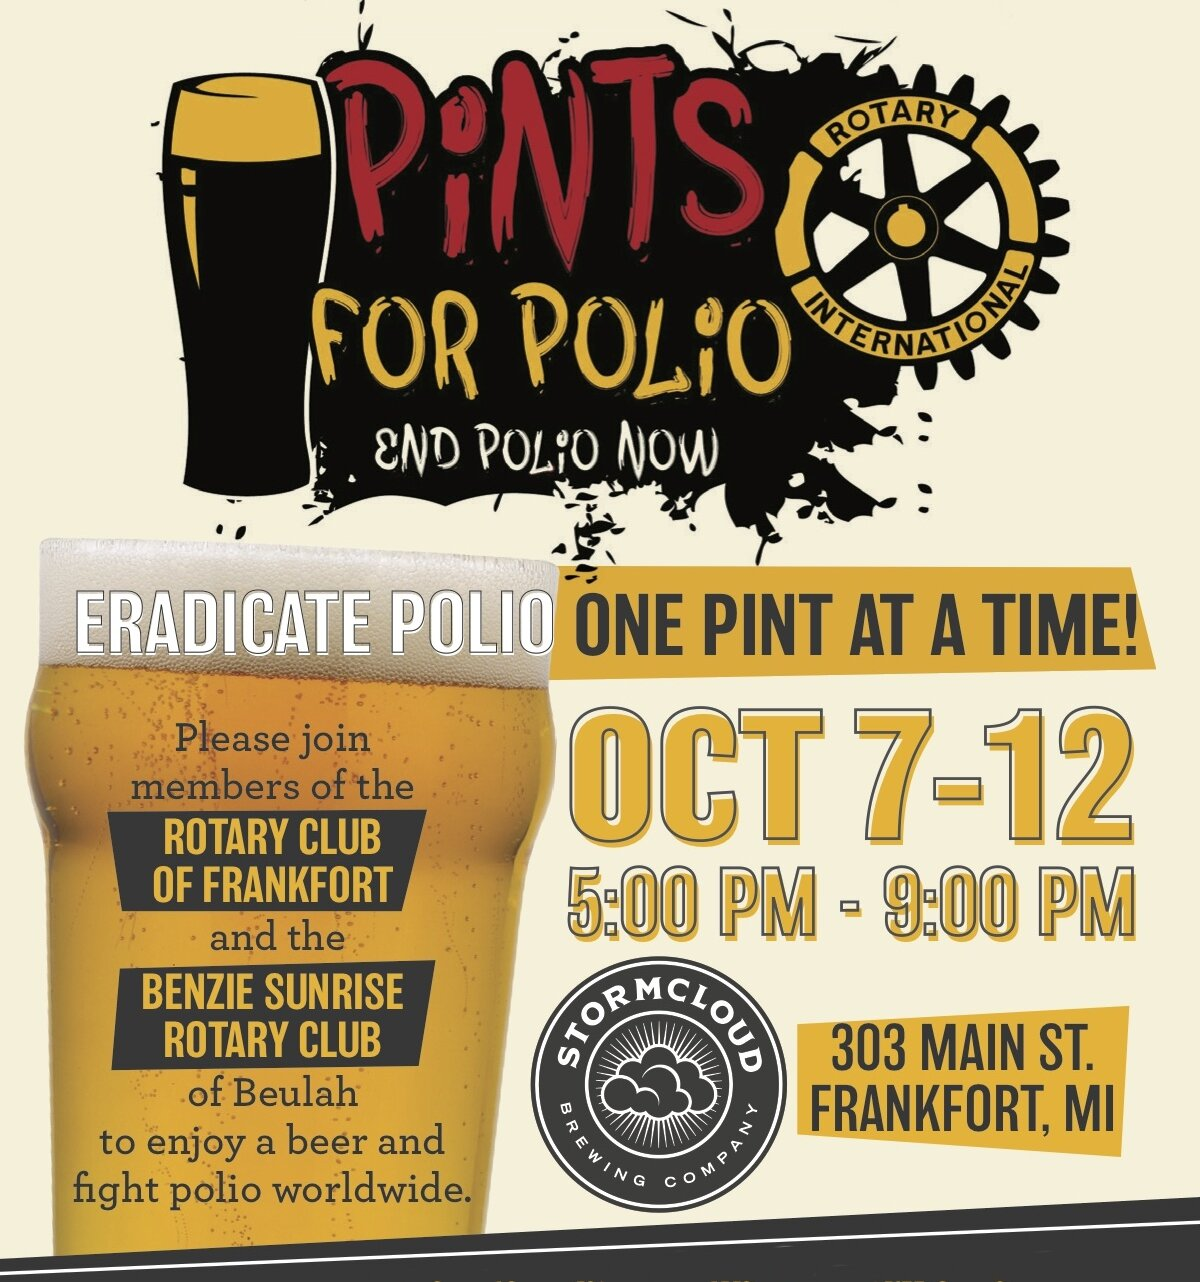 pints for polio crop1.jpg